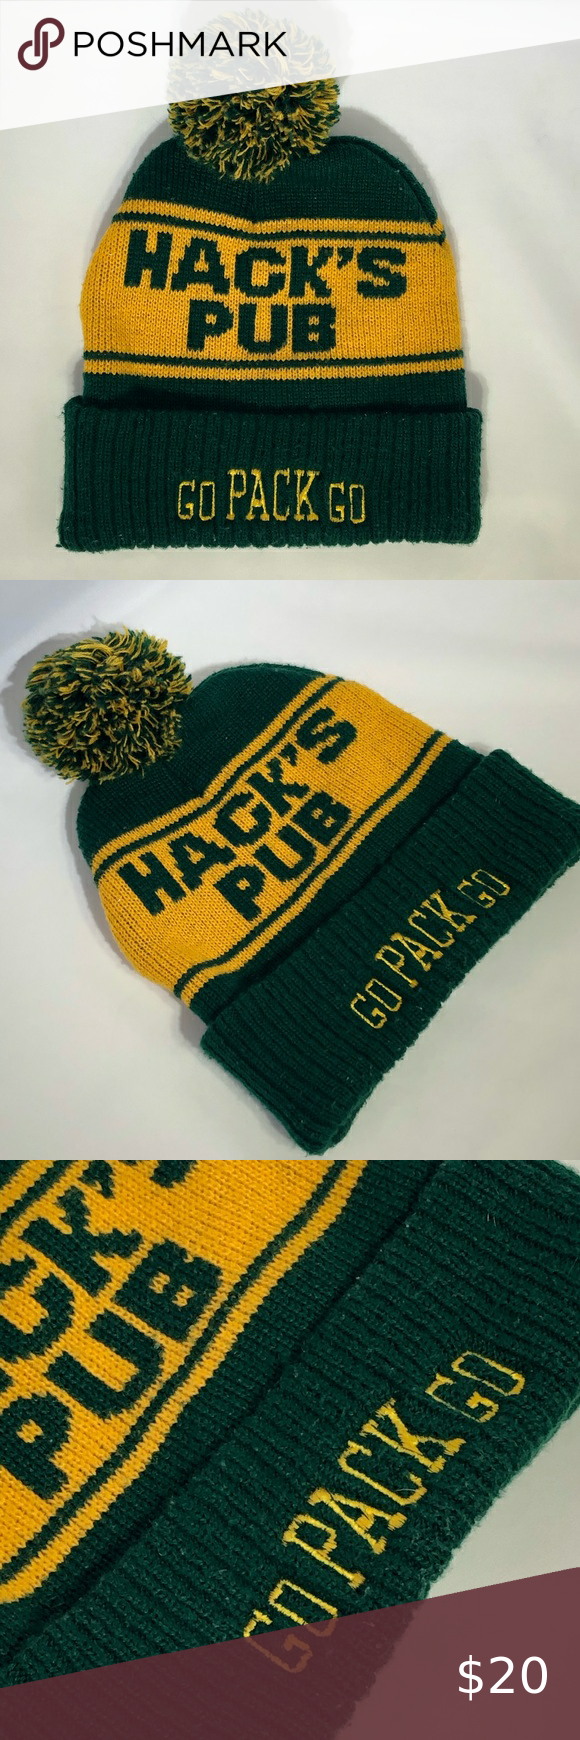 Green Bay Packers Hack S Pub Go Pack Winter Hat In 2020 Winter Hats Winter Stockings Stocking Hat